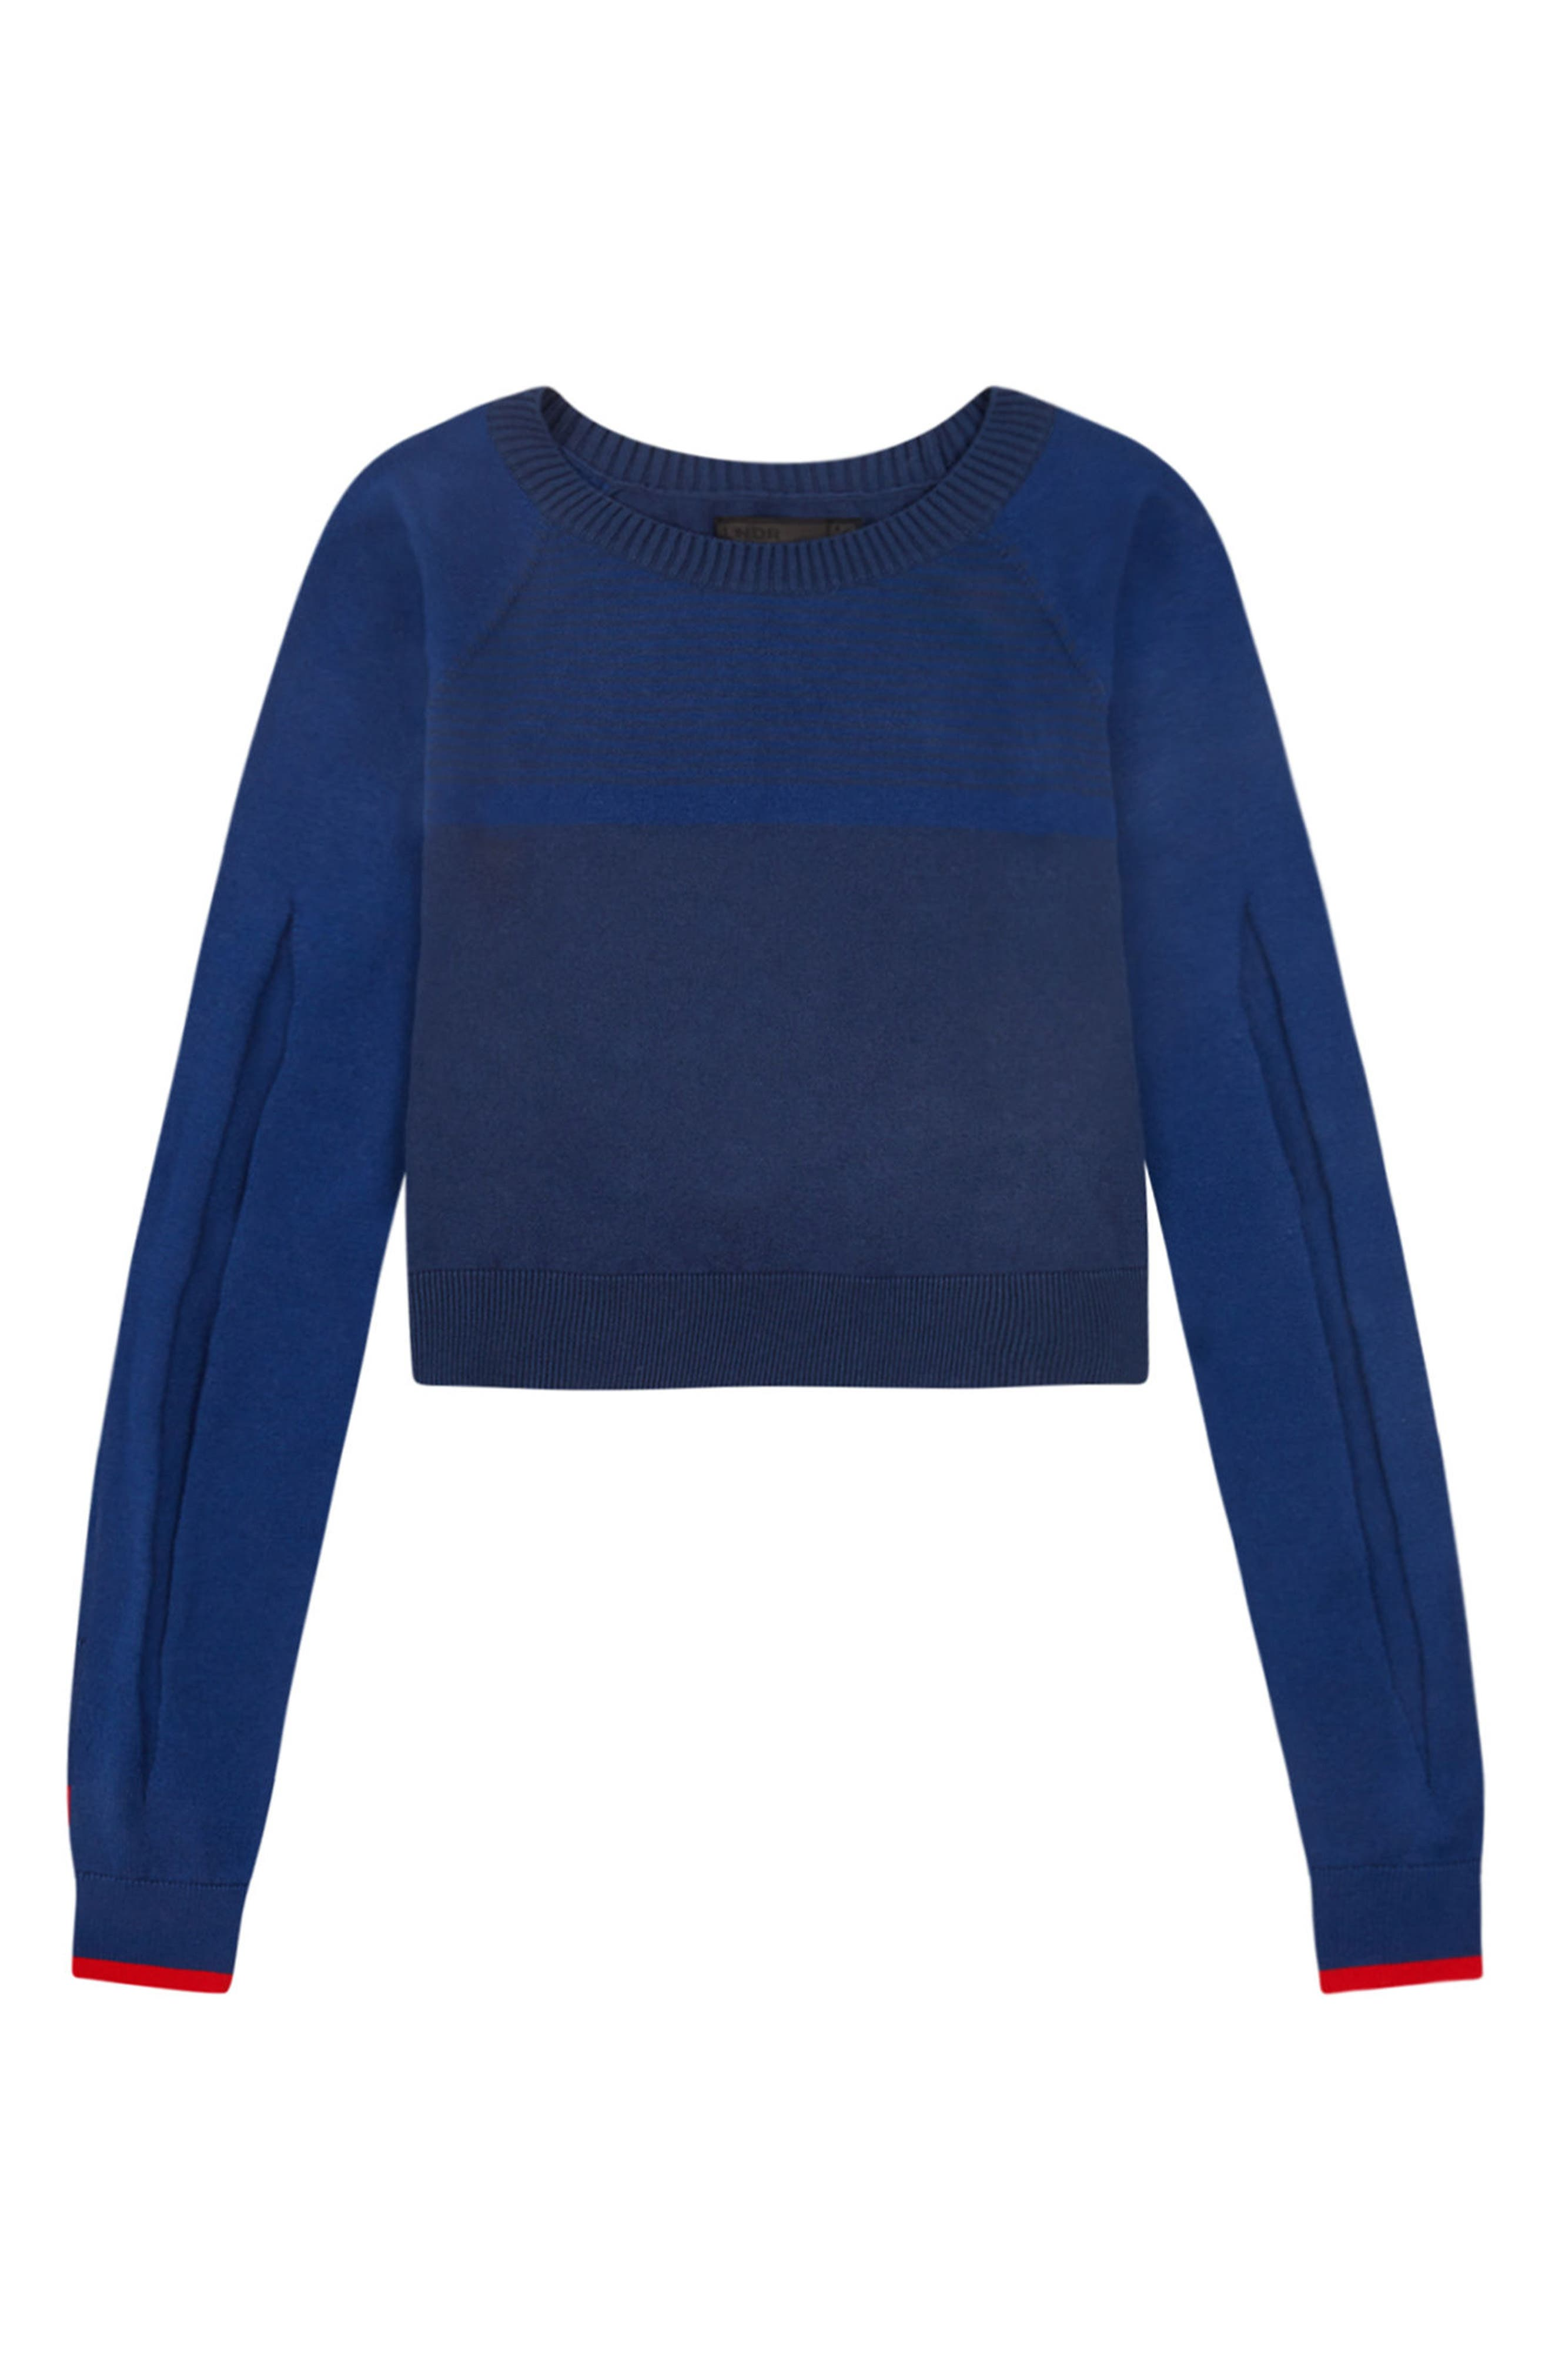 Prism Cropped Sweater,                             Alternate thumbnail 7, color,                             Blue